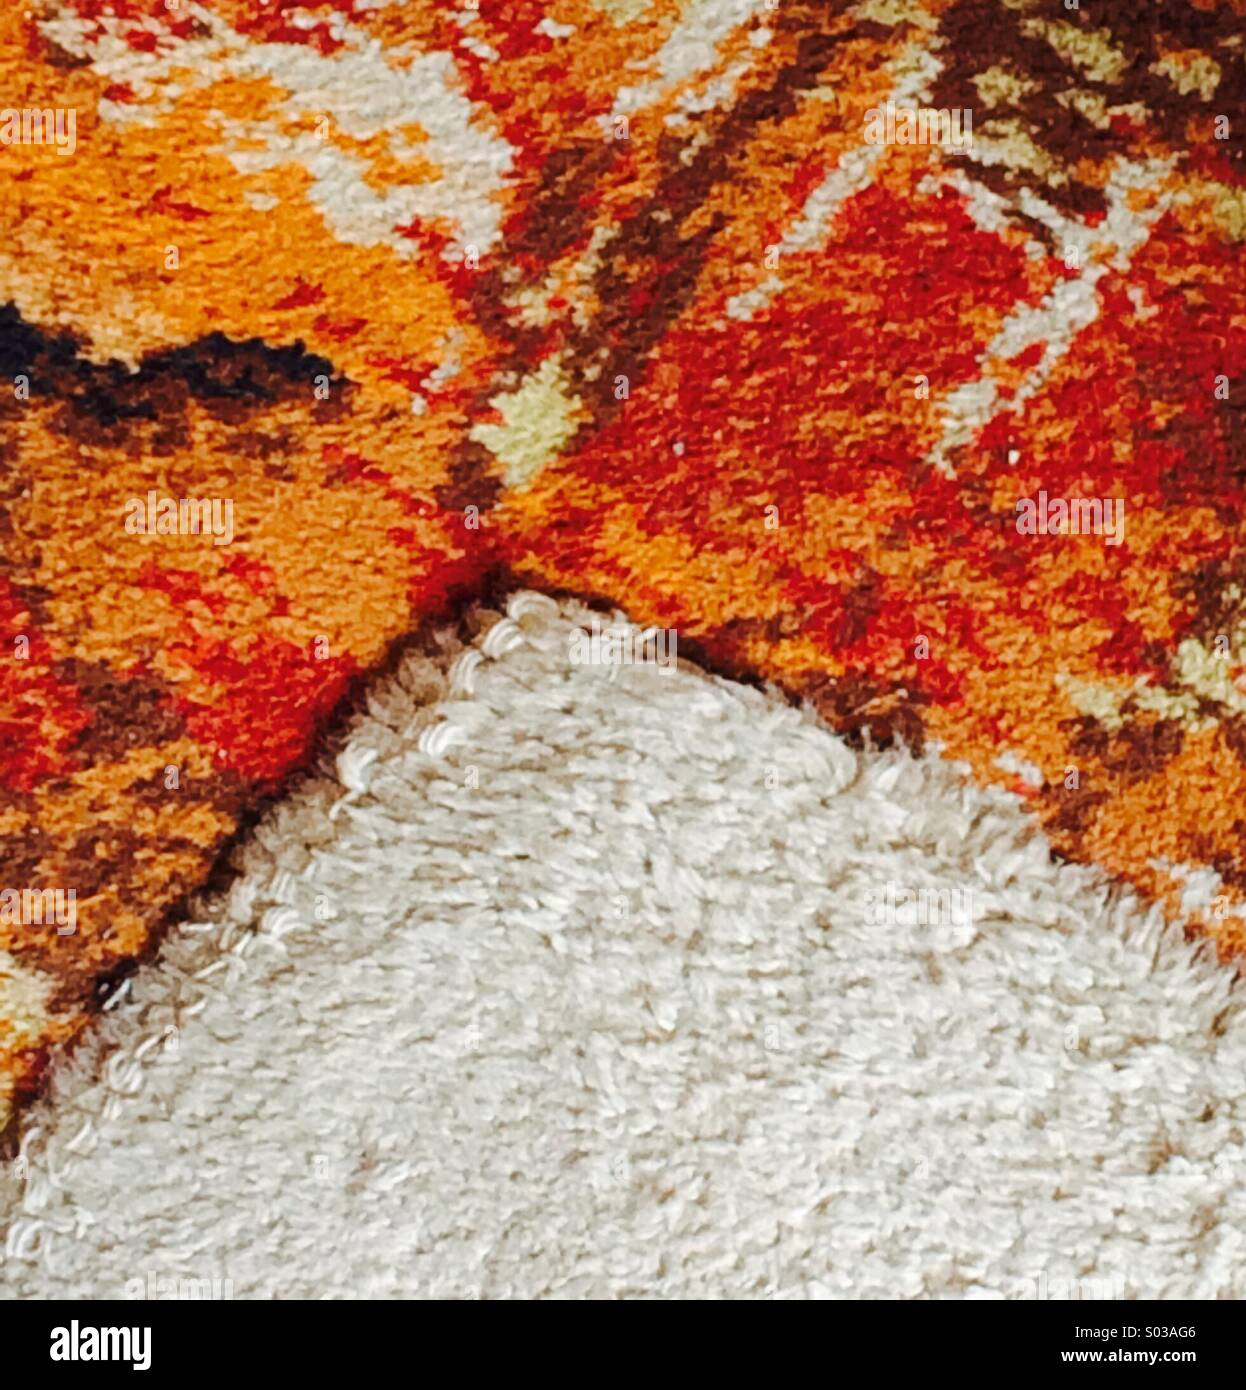 1970's colourful carpet patterns and white shag pile rug - Stock Image